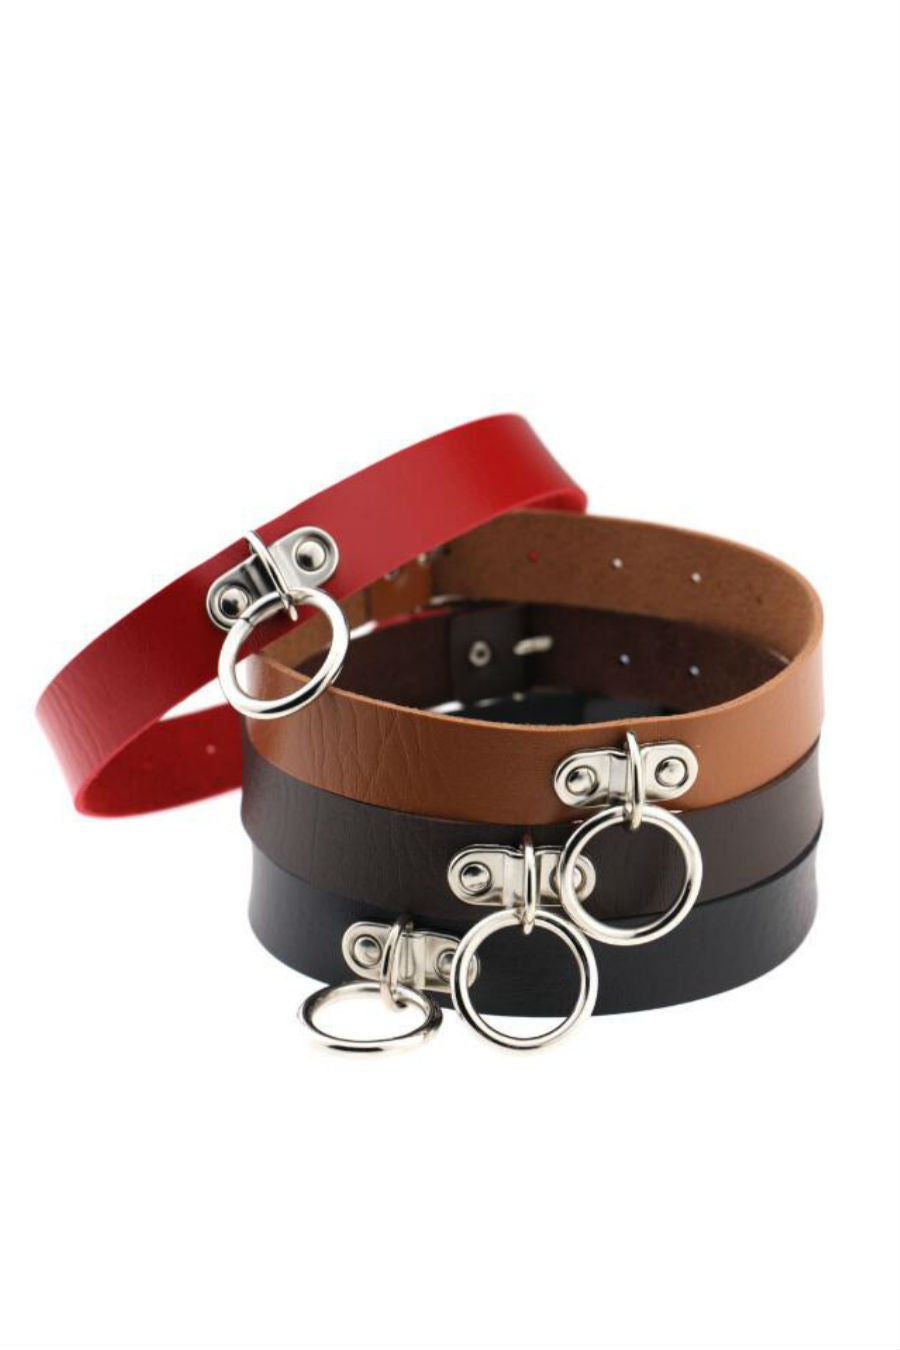 4pcs O-ring Punk Choker